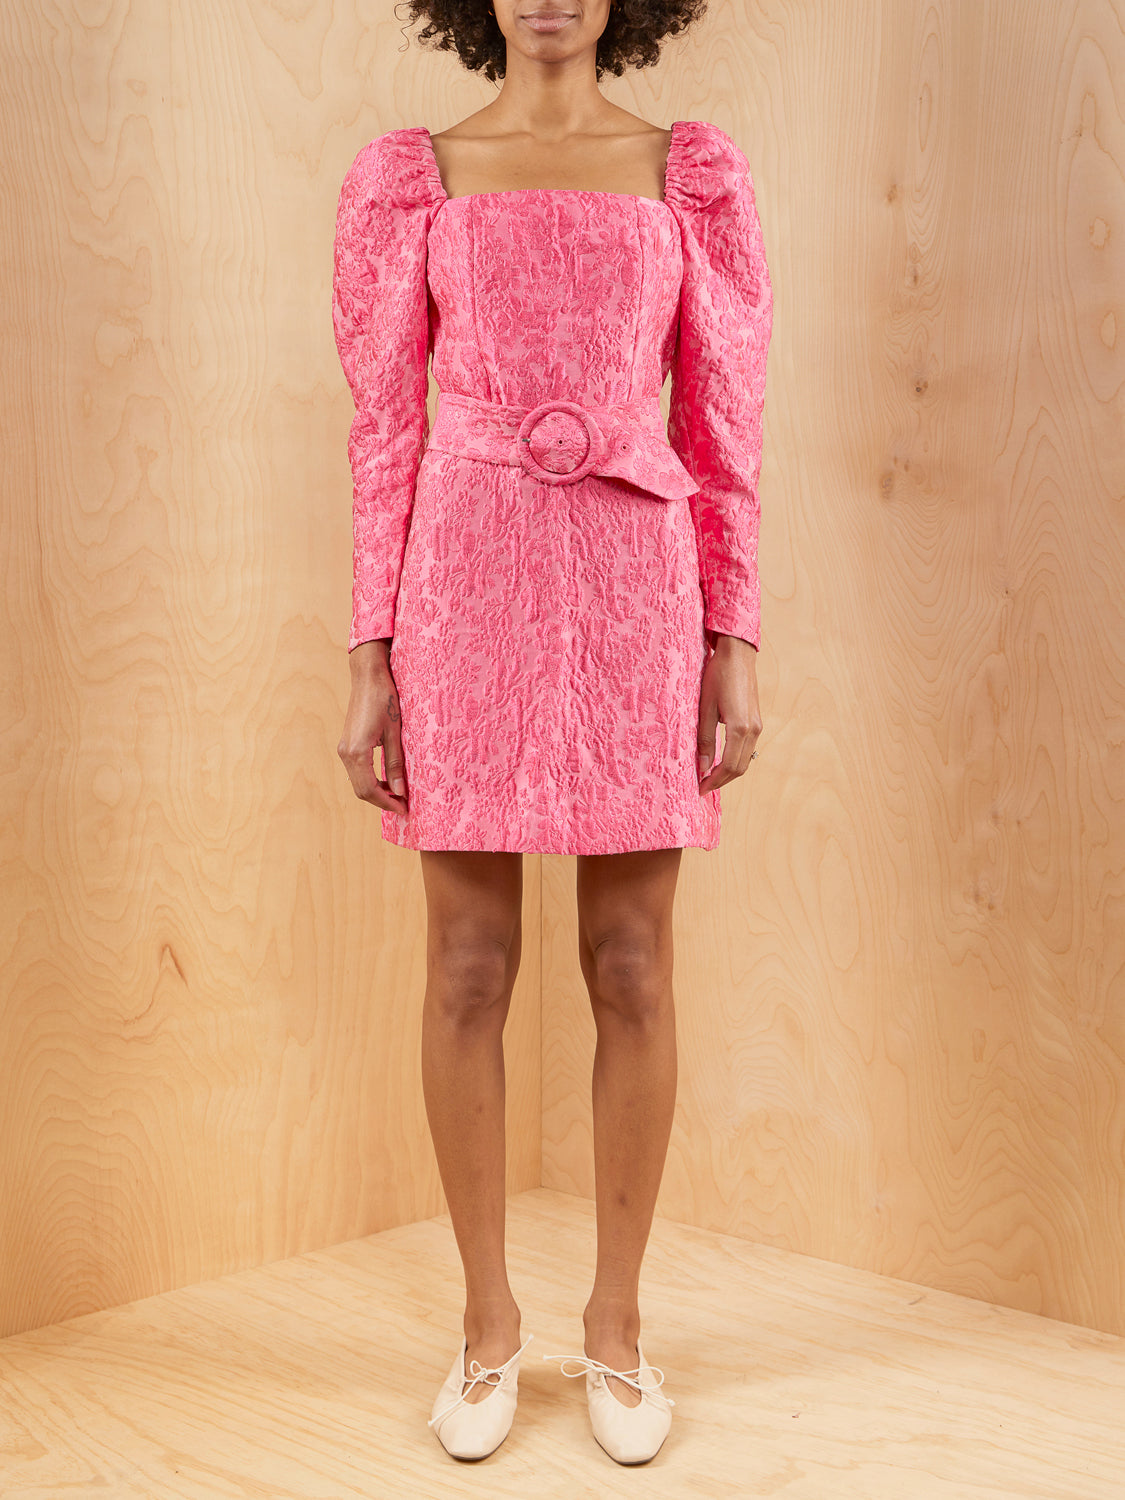 & Other Stories Pink Crinkle Mini Dress with Belt